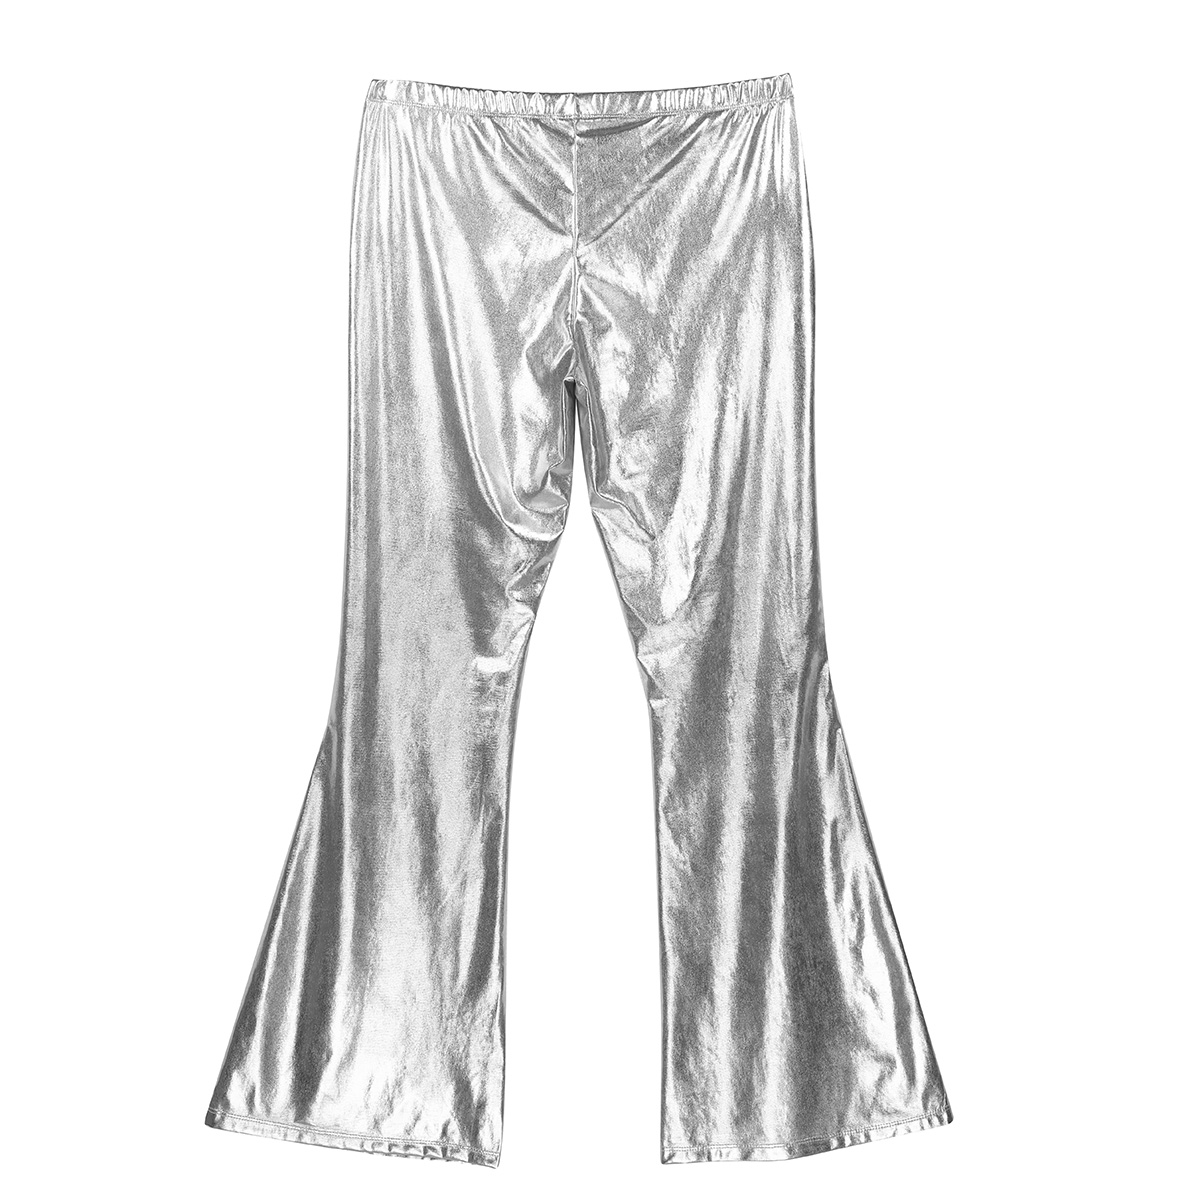 ChicTry Adults Mens Shiny Metallic Disco Pants with Bell Bottom Flared Long Pants Dude Costume Trousers for 70's Theme Parties 50